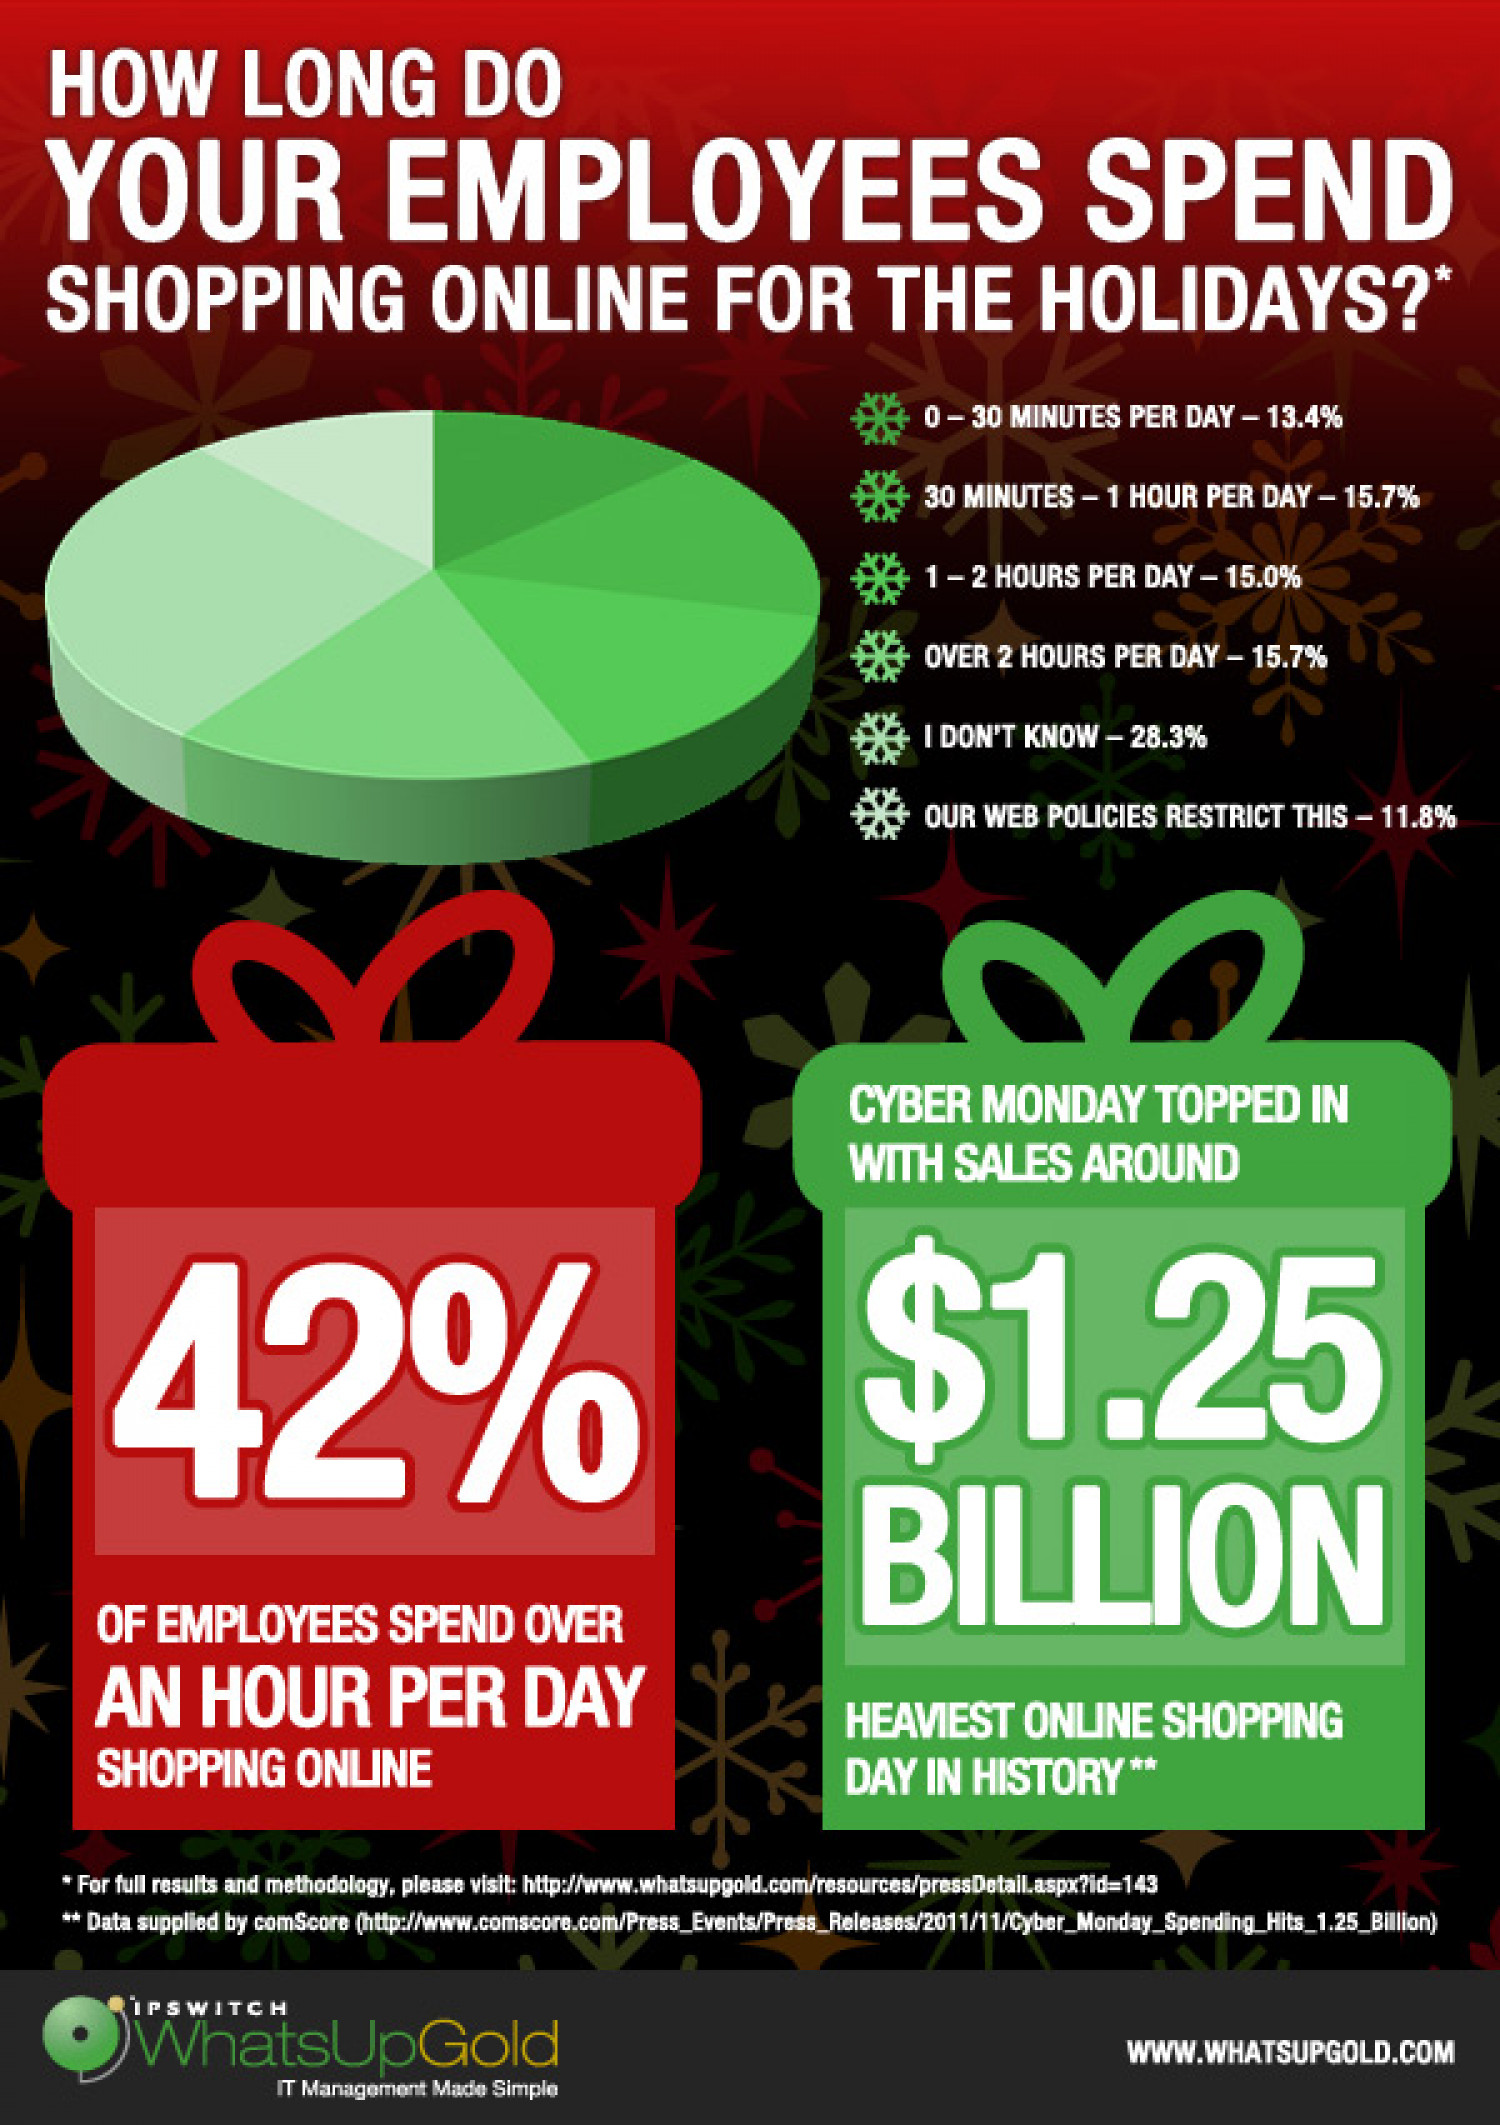 2011 Ipswitch Announces Holiday Shopping Poll Results Infographic